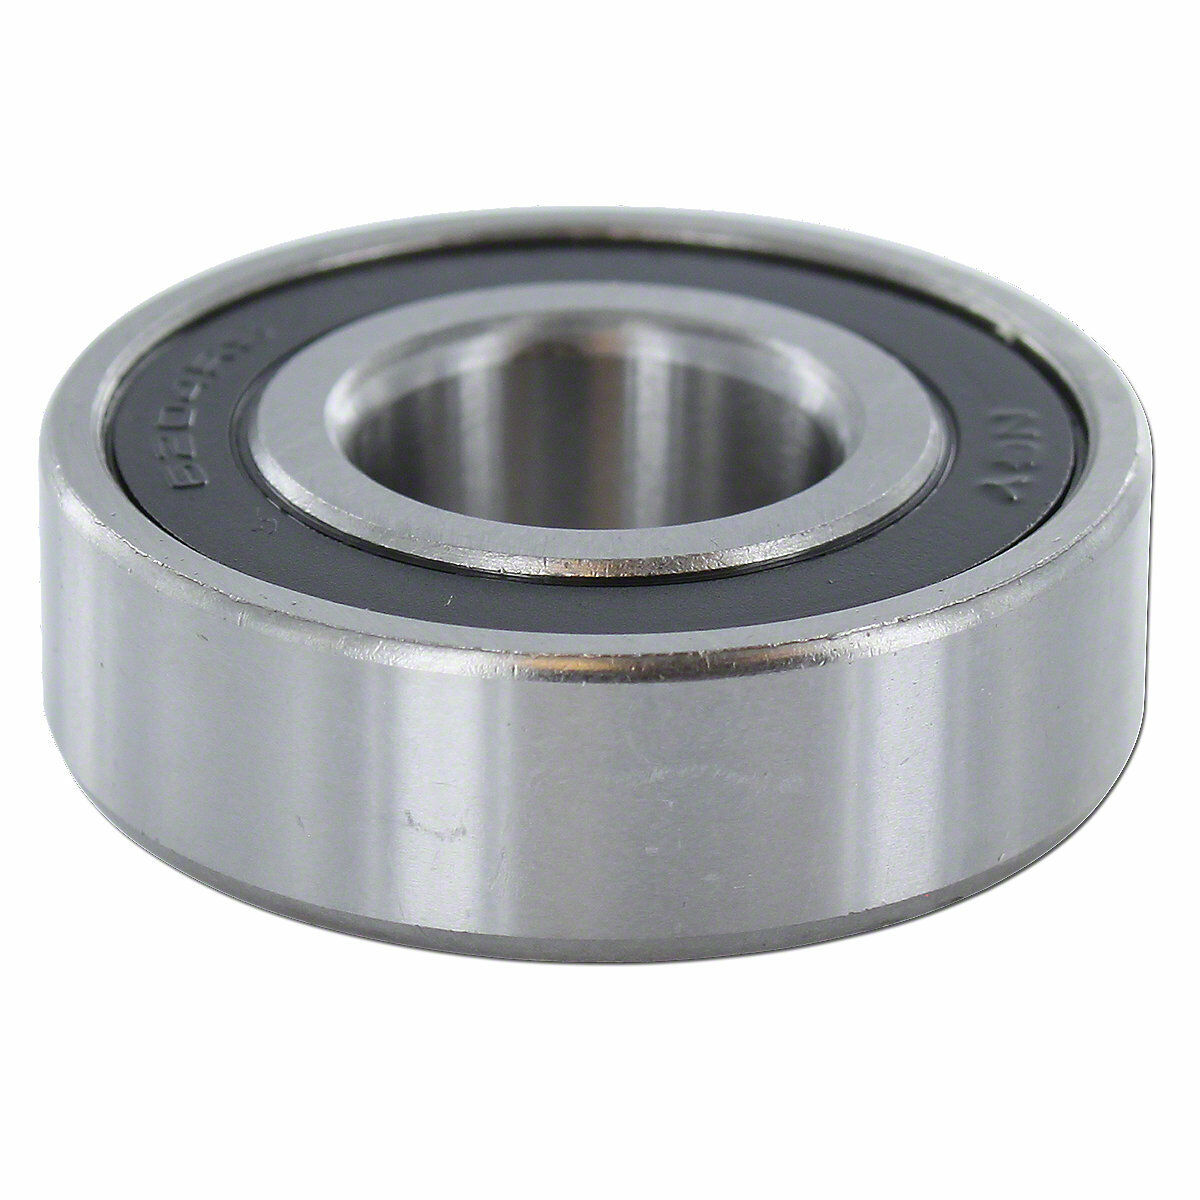 For An 8n Ford Tractor Clutch : P c nn a new tractor clutch pilot bearing ford n naa